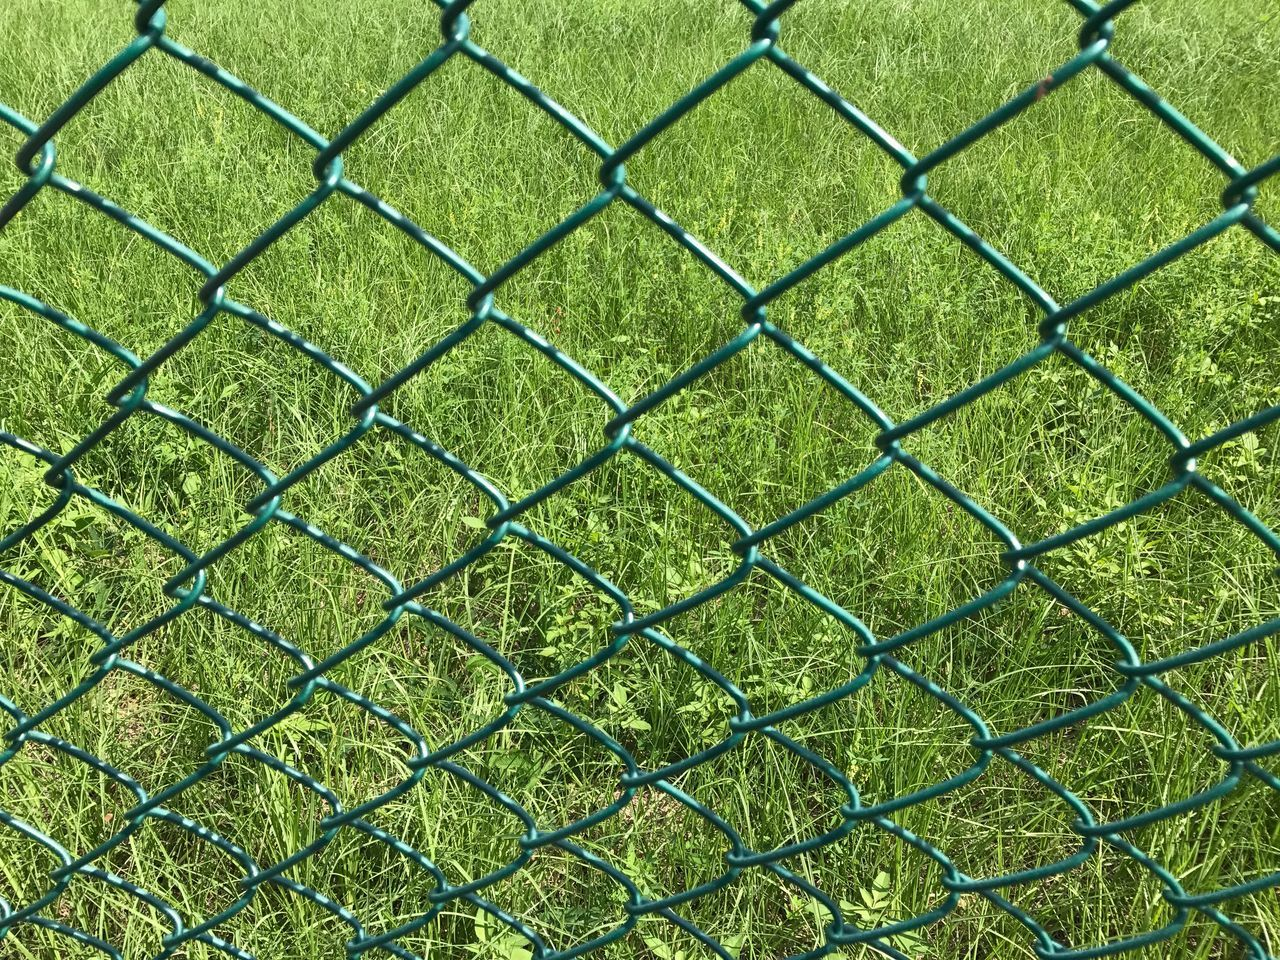 green color, backgrounds, full frame, grass, no people, day, outdoors, sport, nature, playing field, close-up, beauty in nature, soccer field